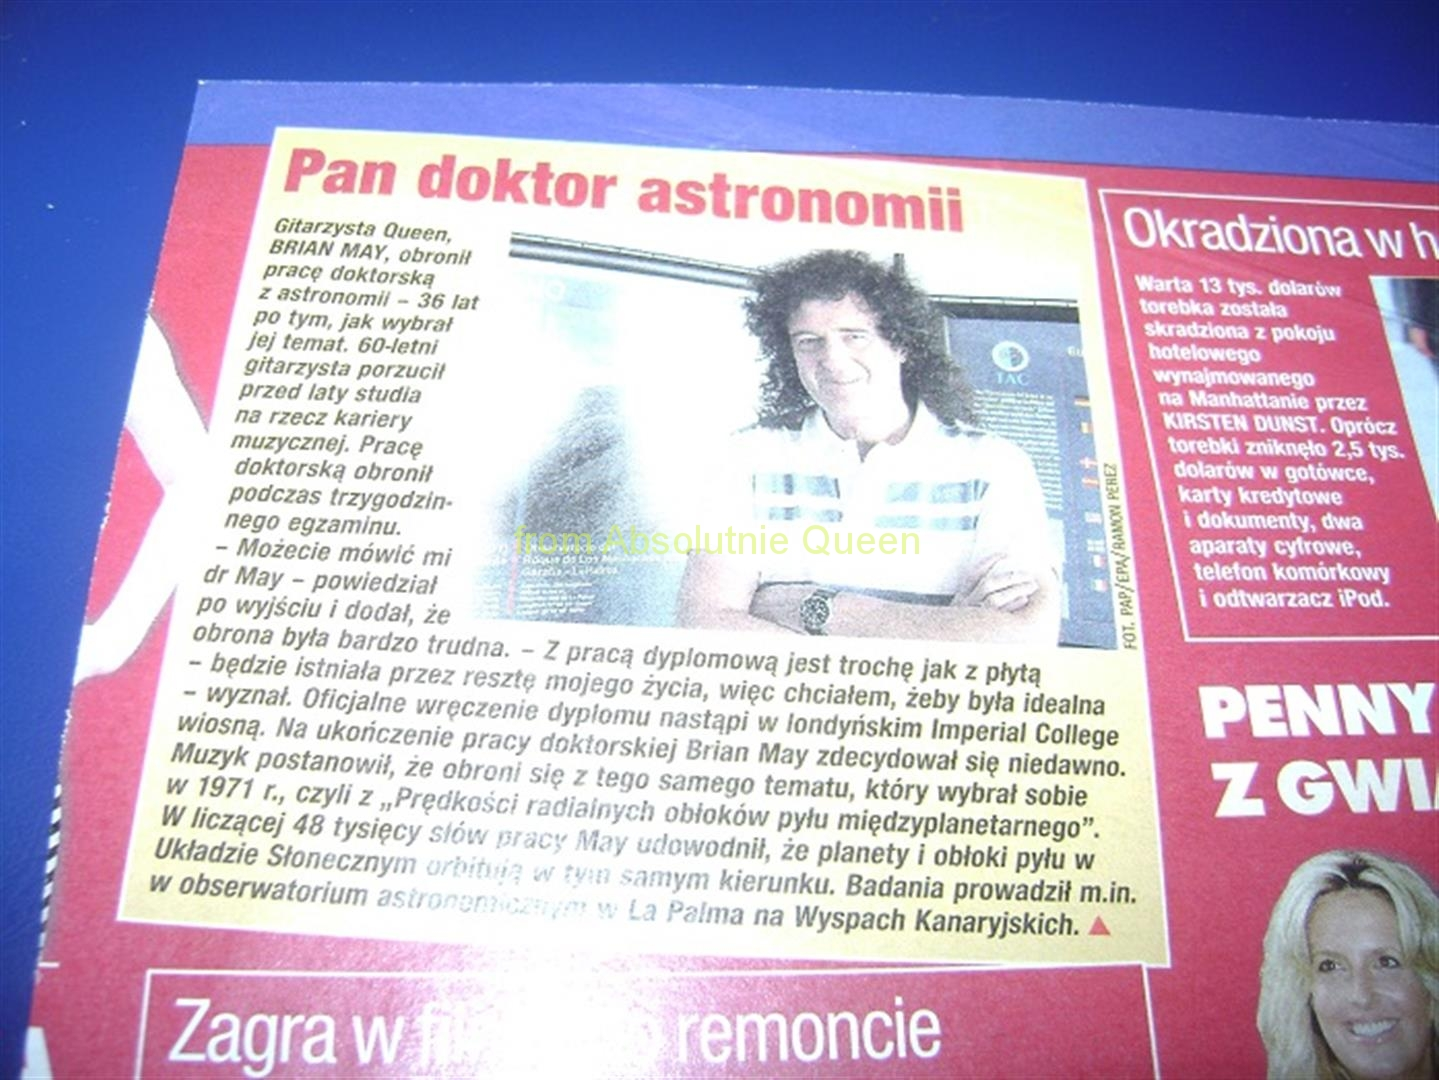 BRIAN MAY PAN DOKTOR ASTRONOMII - program expresu bydgoskiego 2008 r.